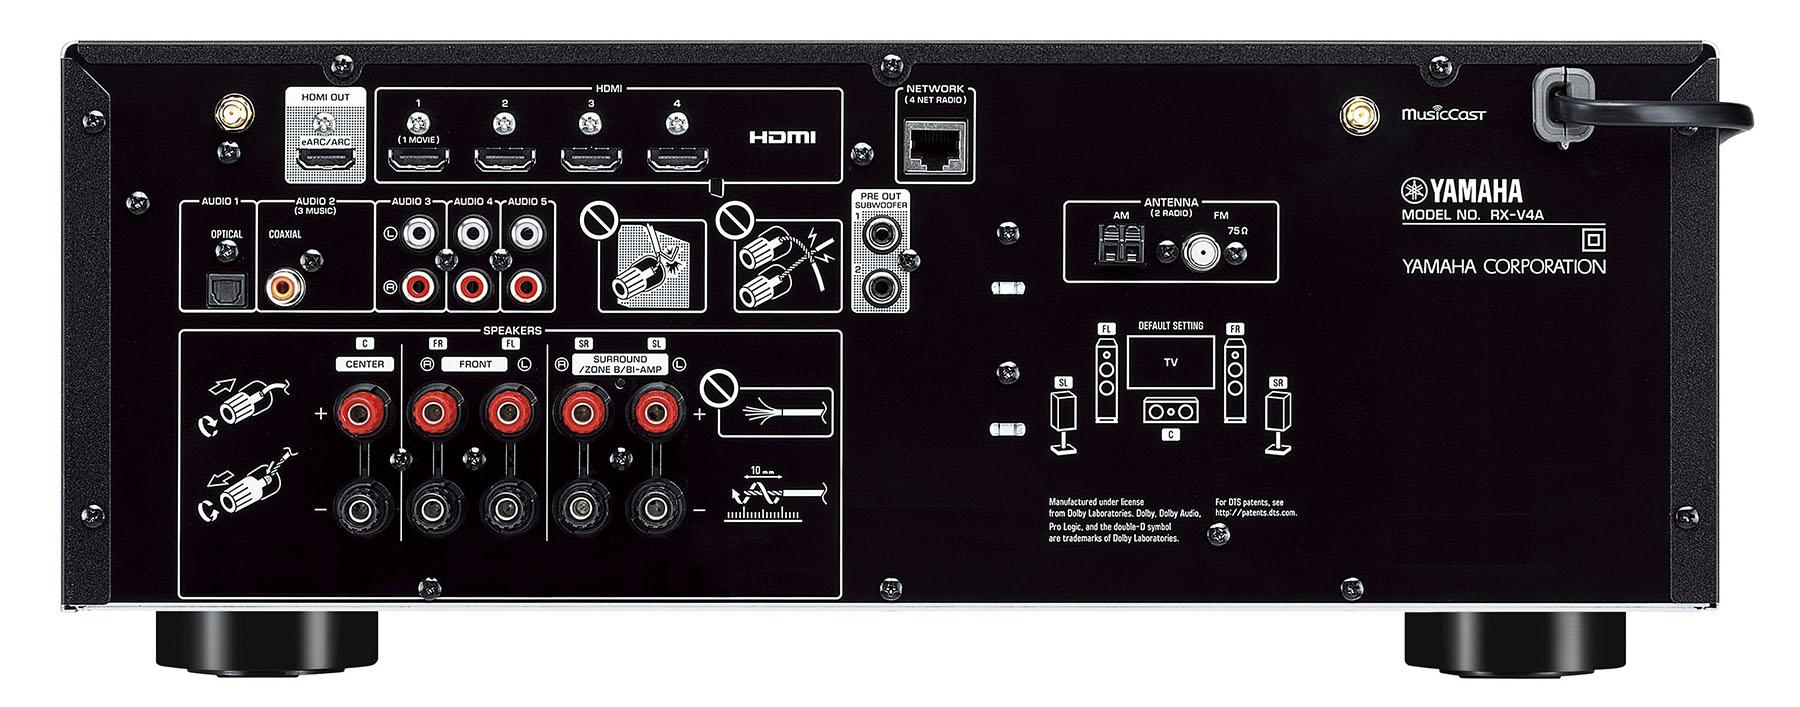 The least expensive of Yamaha's new generation of AV receivers has features and performance that once cost thousands, and some that will keep it current for years.